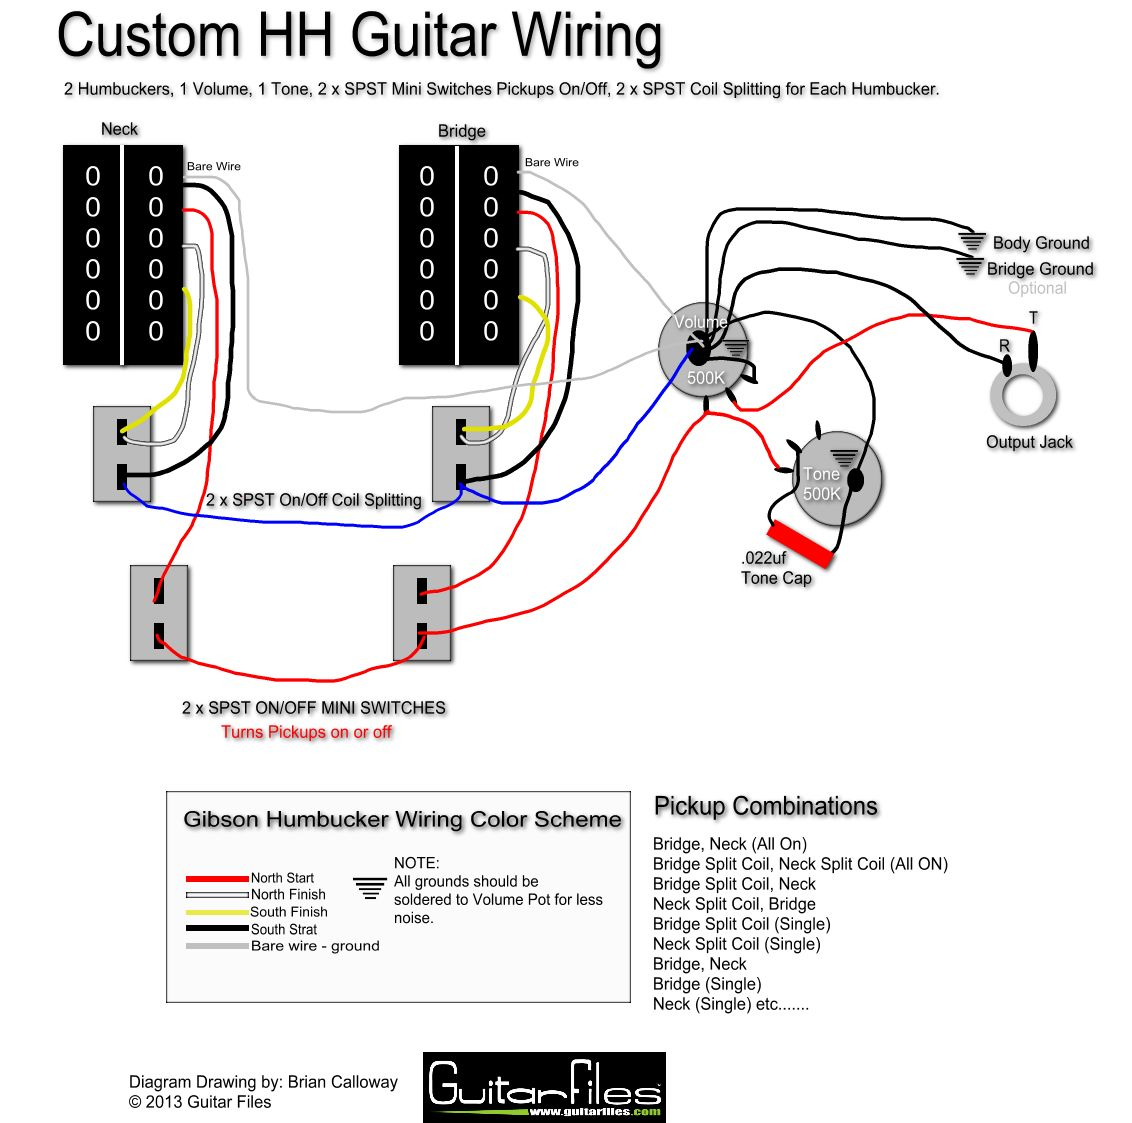 Custom Electric Guitar Wiring Diagrams Detailed Schematic Diagram Hh With Spst Coil Splitting And Switching Electronics Strat